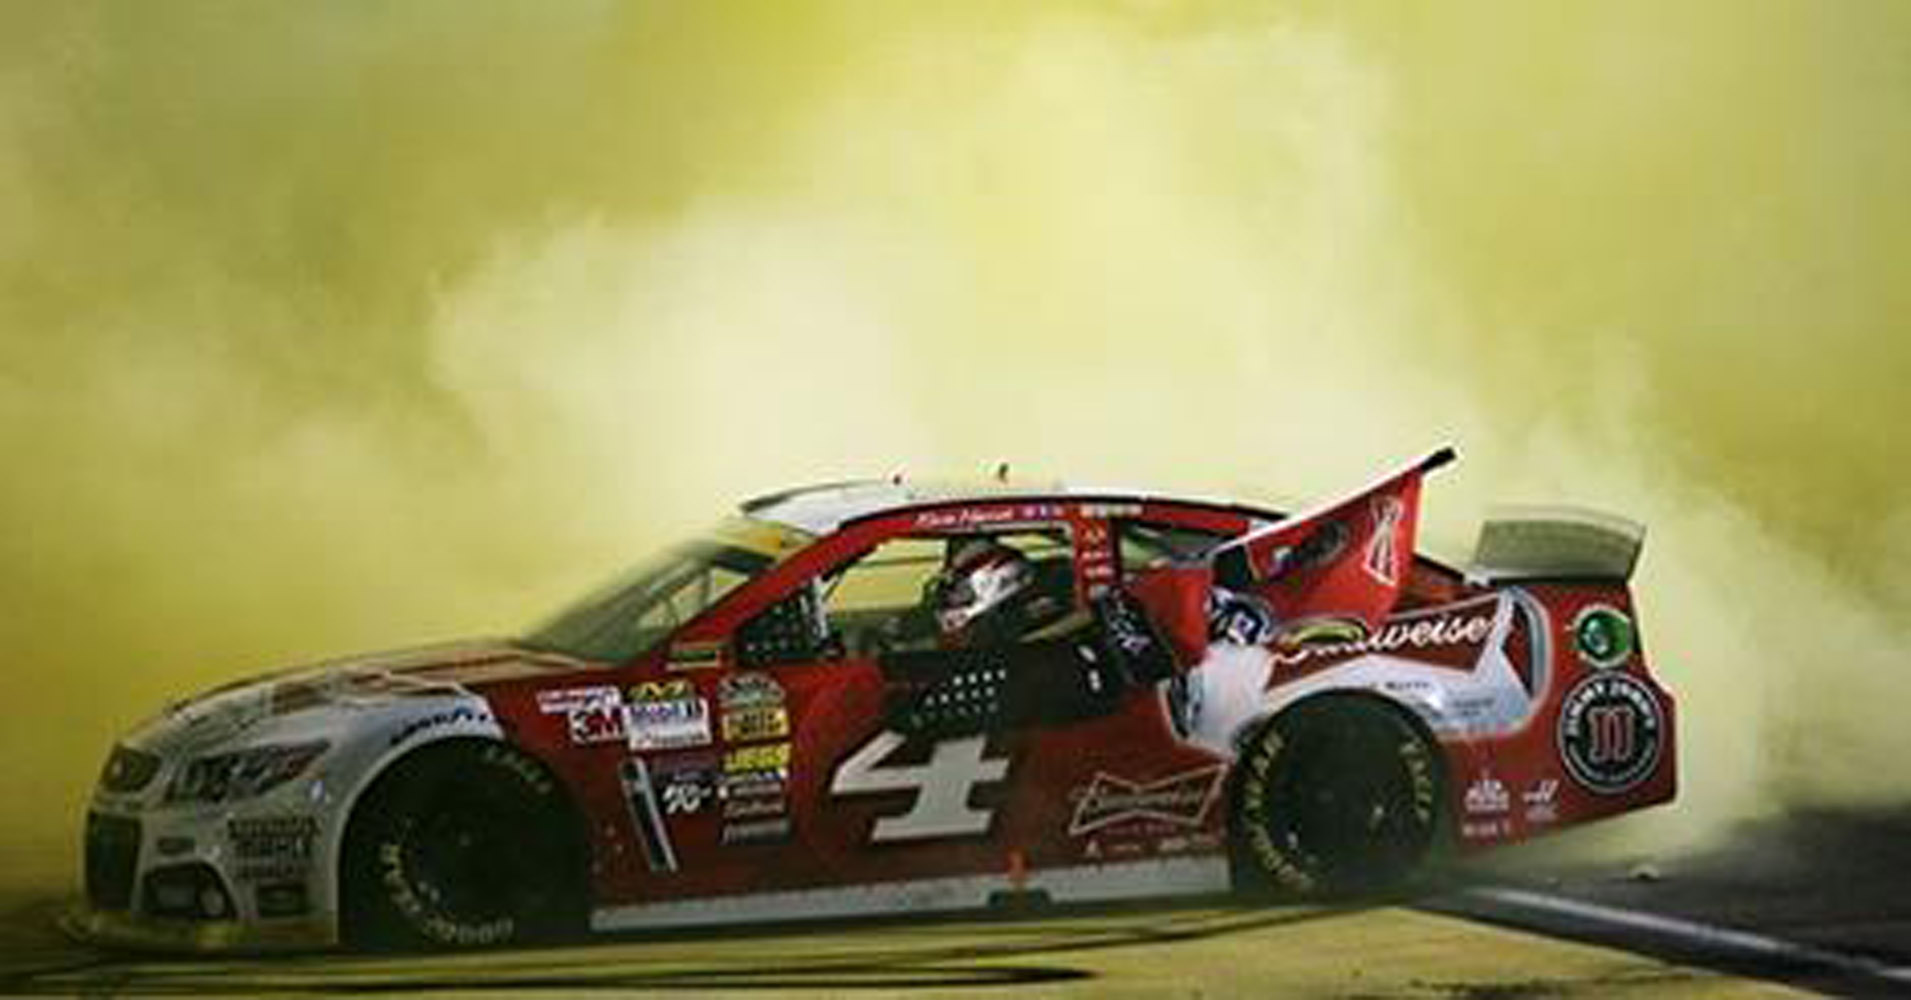 2014 Kevin Harvick #4 Budweiser Homestead Win 1:24 Diecast Car